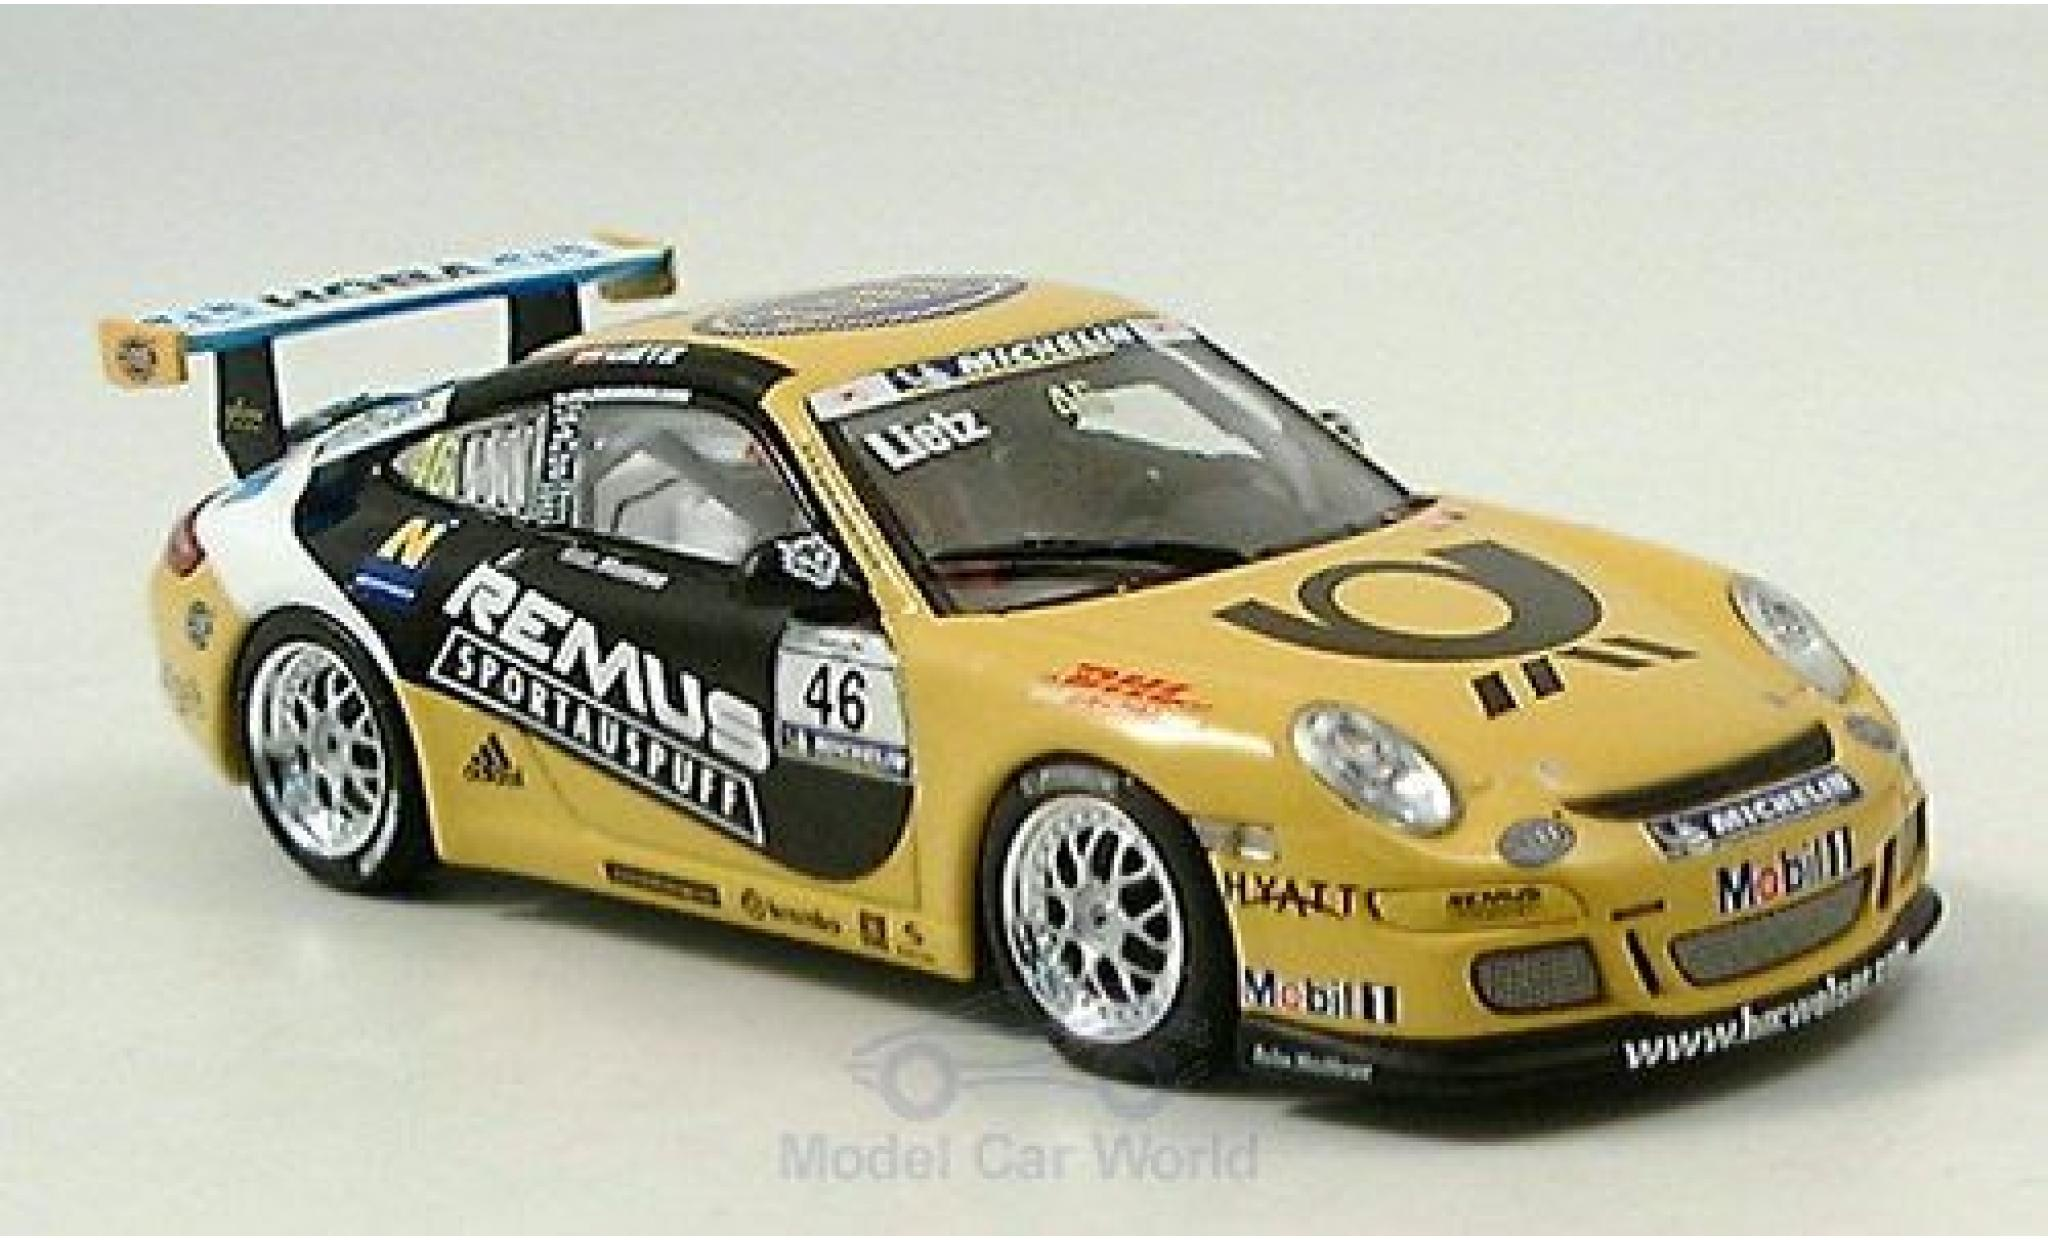 Porsche 911 SC 1/43 Minichamps GT3 No.46 Tolimit Motorsport Post R.Lietz